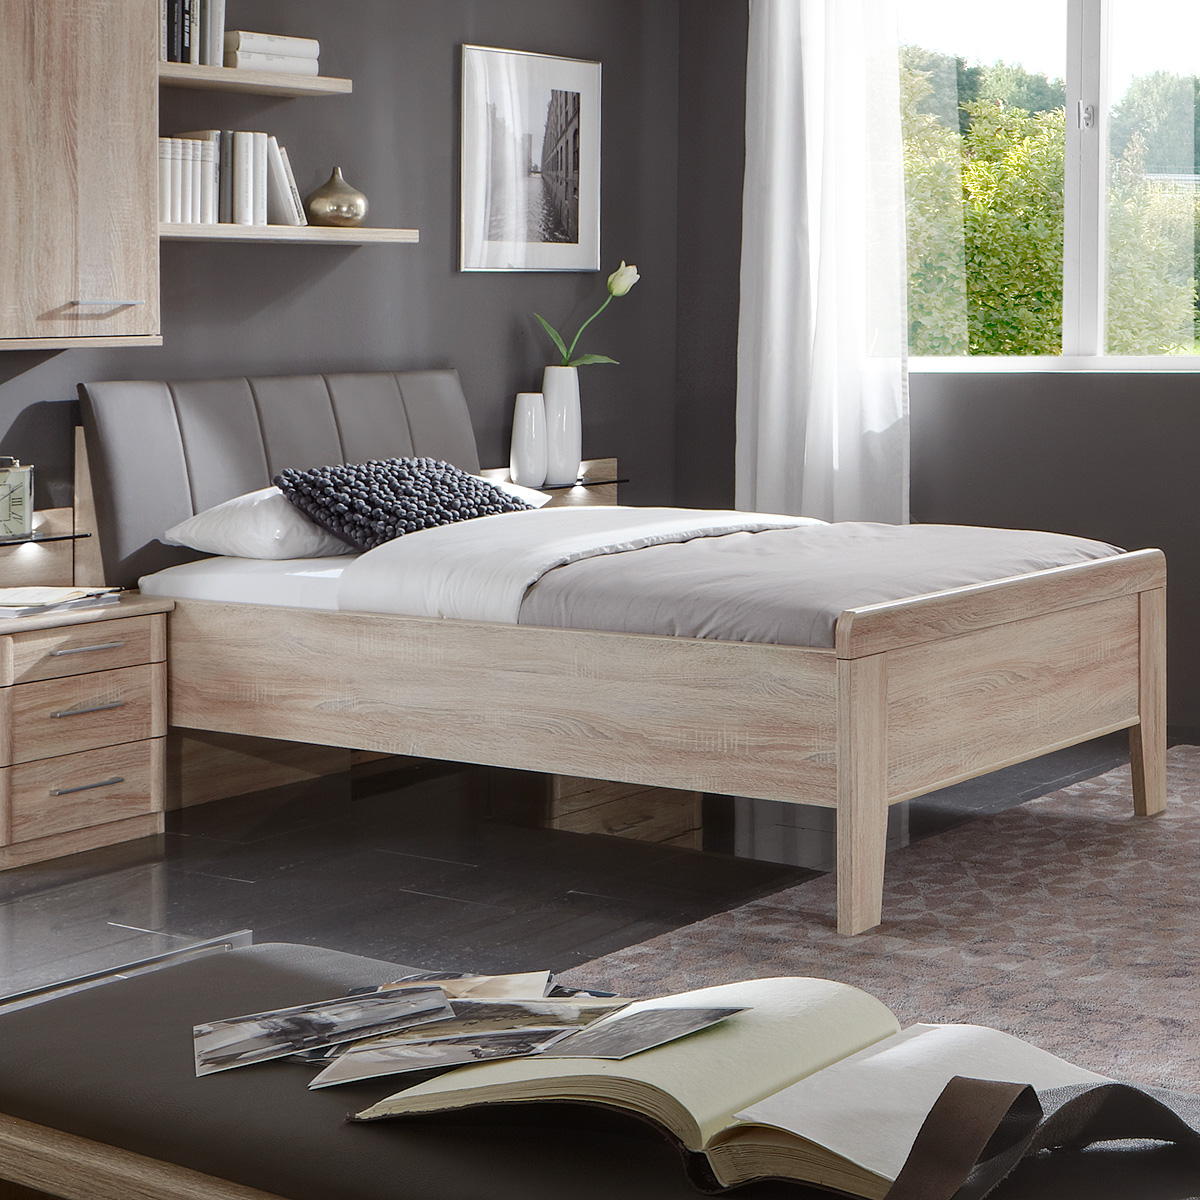 bett meran polsterbett einzelbett in eiche s gerau mit polster havanna 90x200 ebay. Black Bedroom Furniture Sets. Home Design Ideas